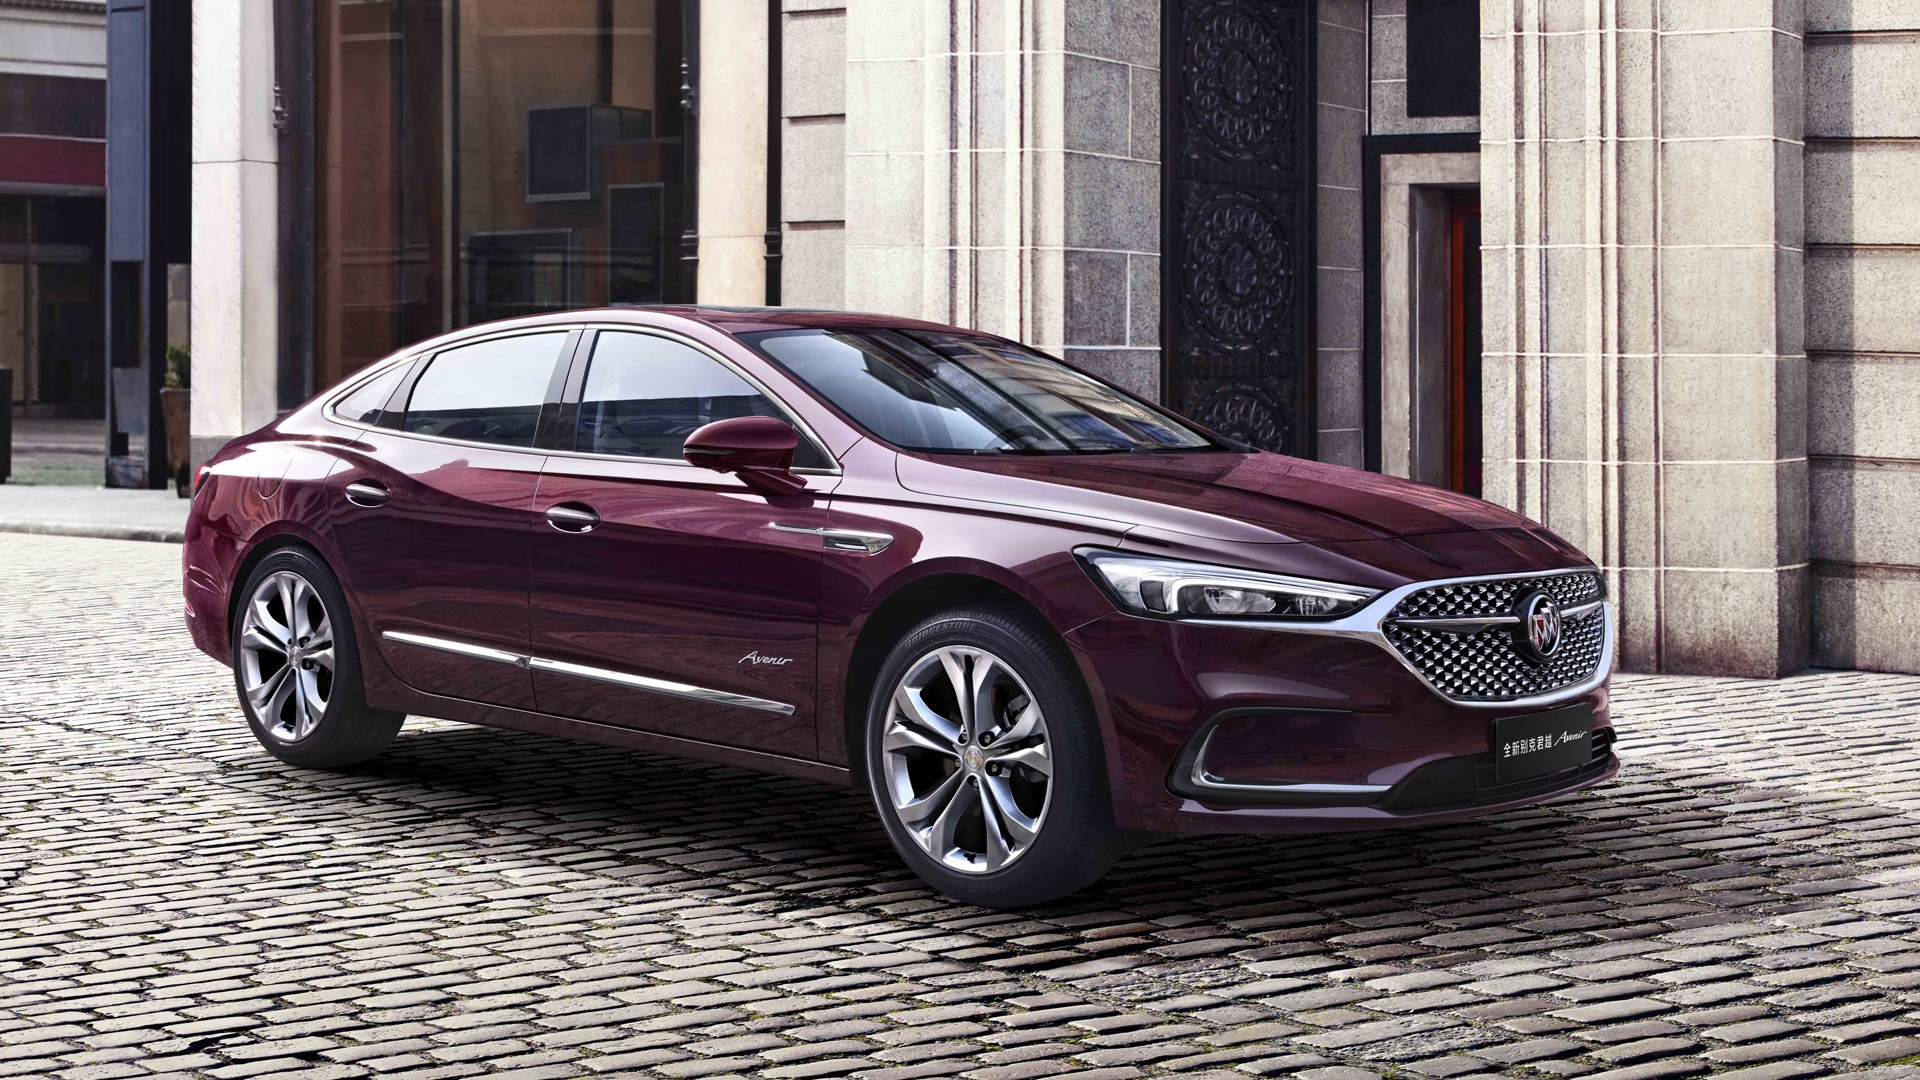 Car Spy Shots, News, Reviews, And Insights - Motor Authority New 2022 Buick Lacrosse Pictures, Cost, Trims